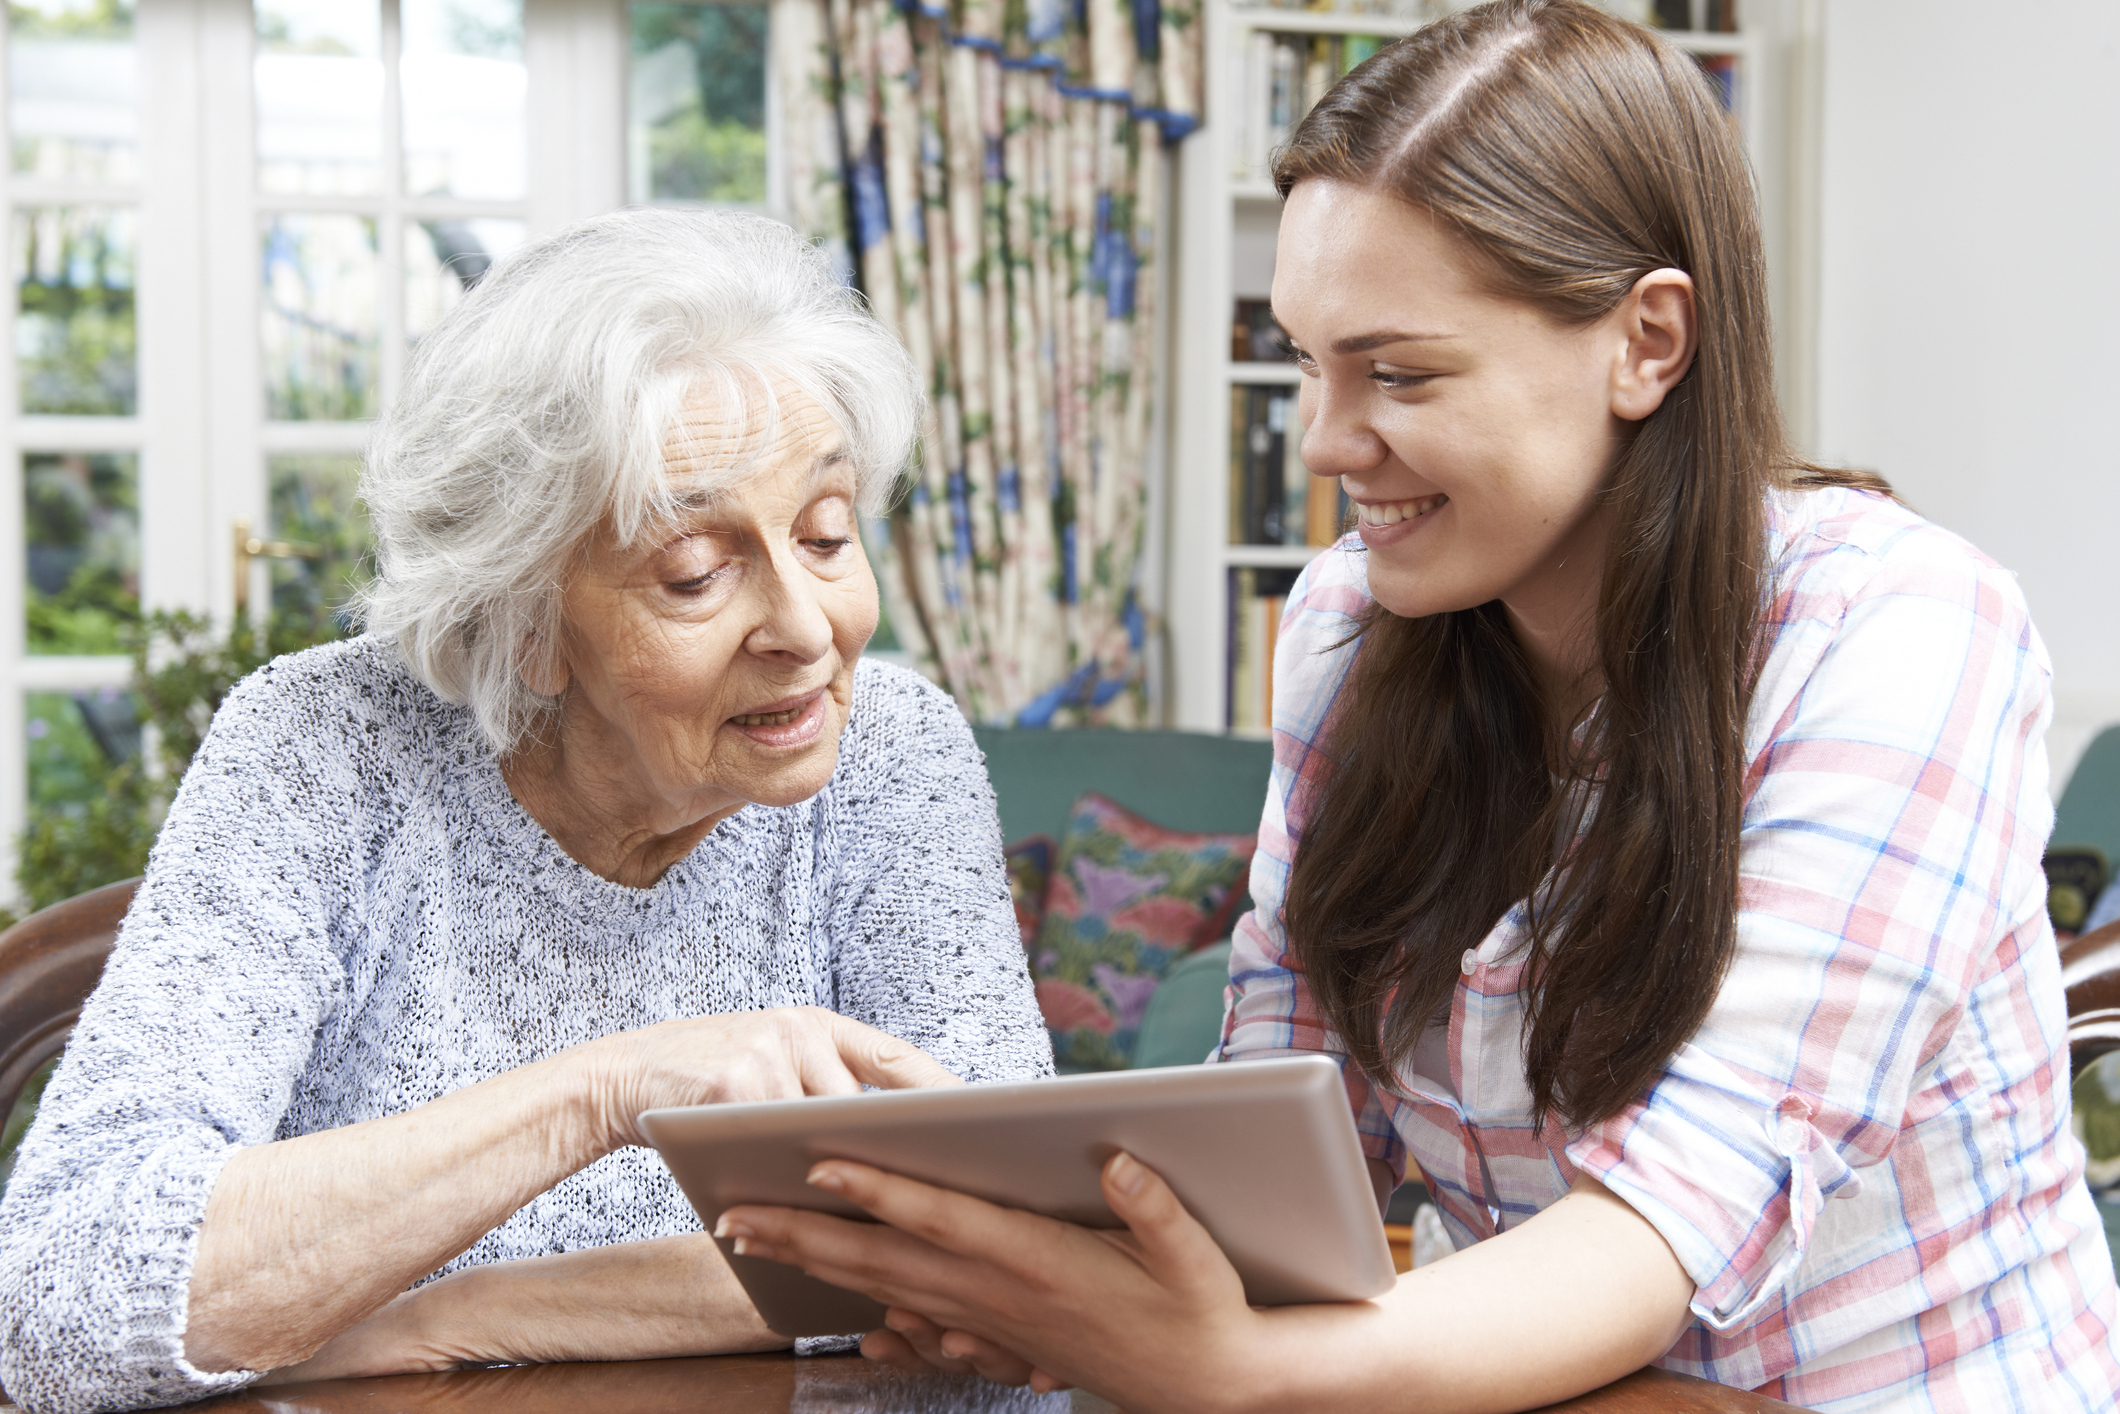 Grandmother knows best (iStock)